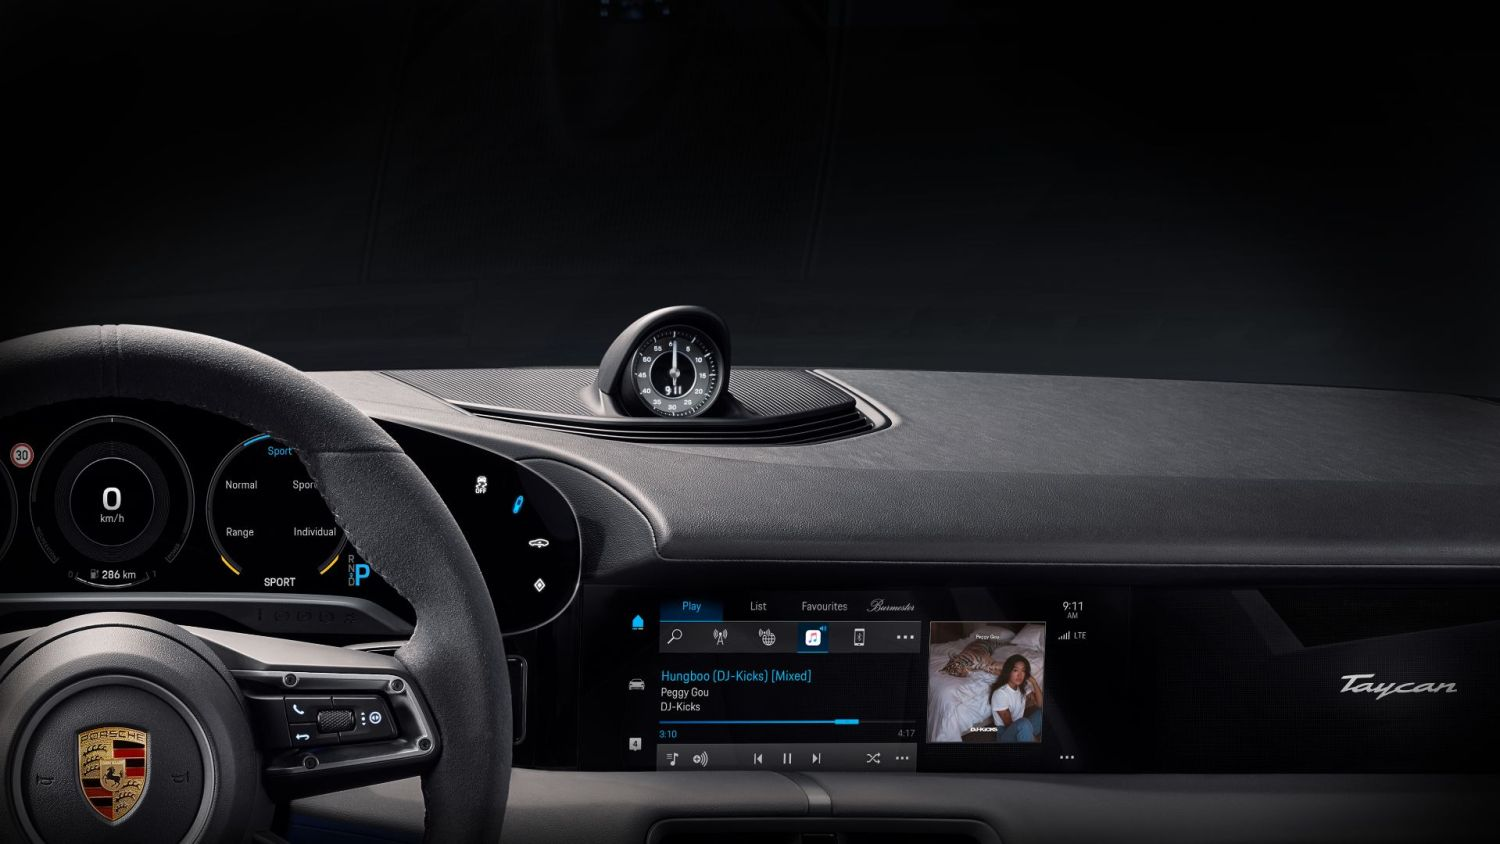 Porsche Taycan gets build-in Apple Music